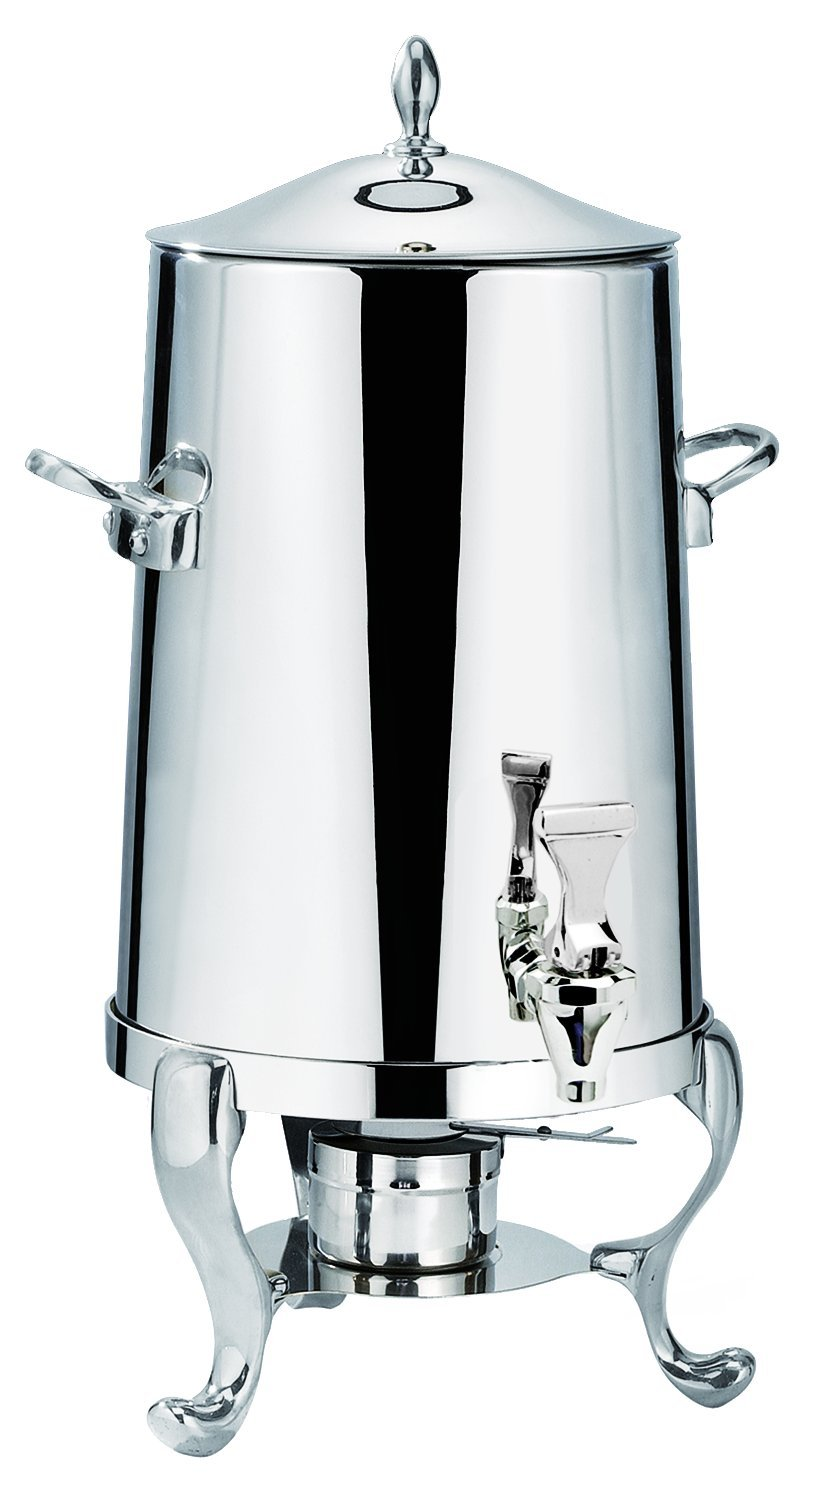 Eastern Tabletop 3113 Stainless Steel Park Avenue 3-Gallon Coffee Urn